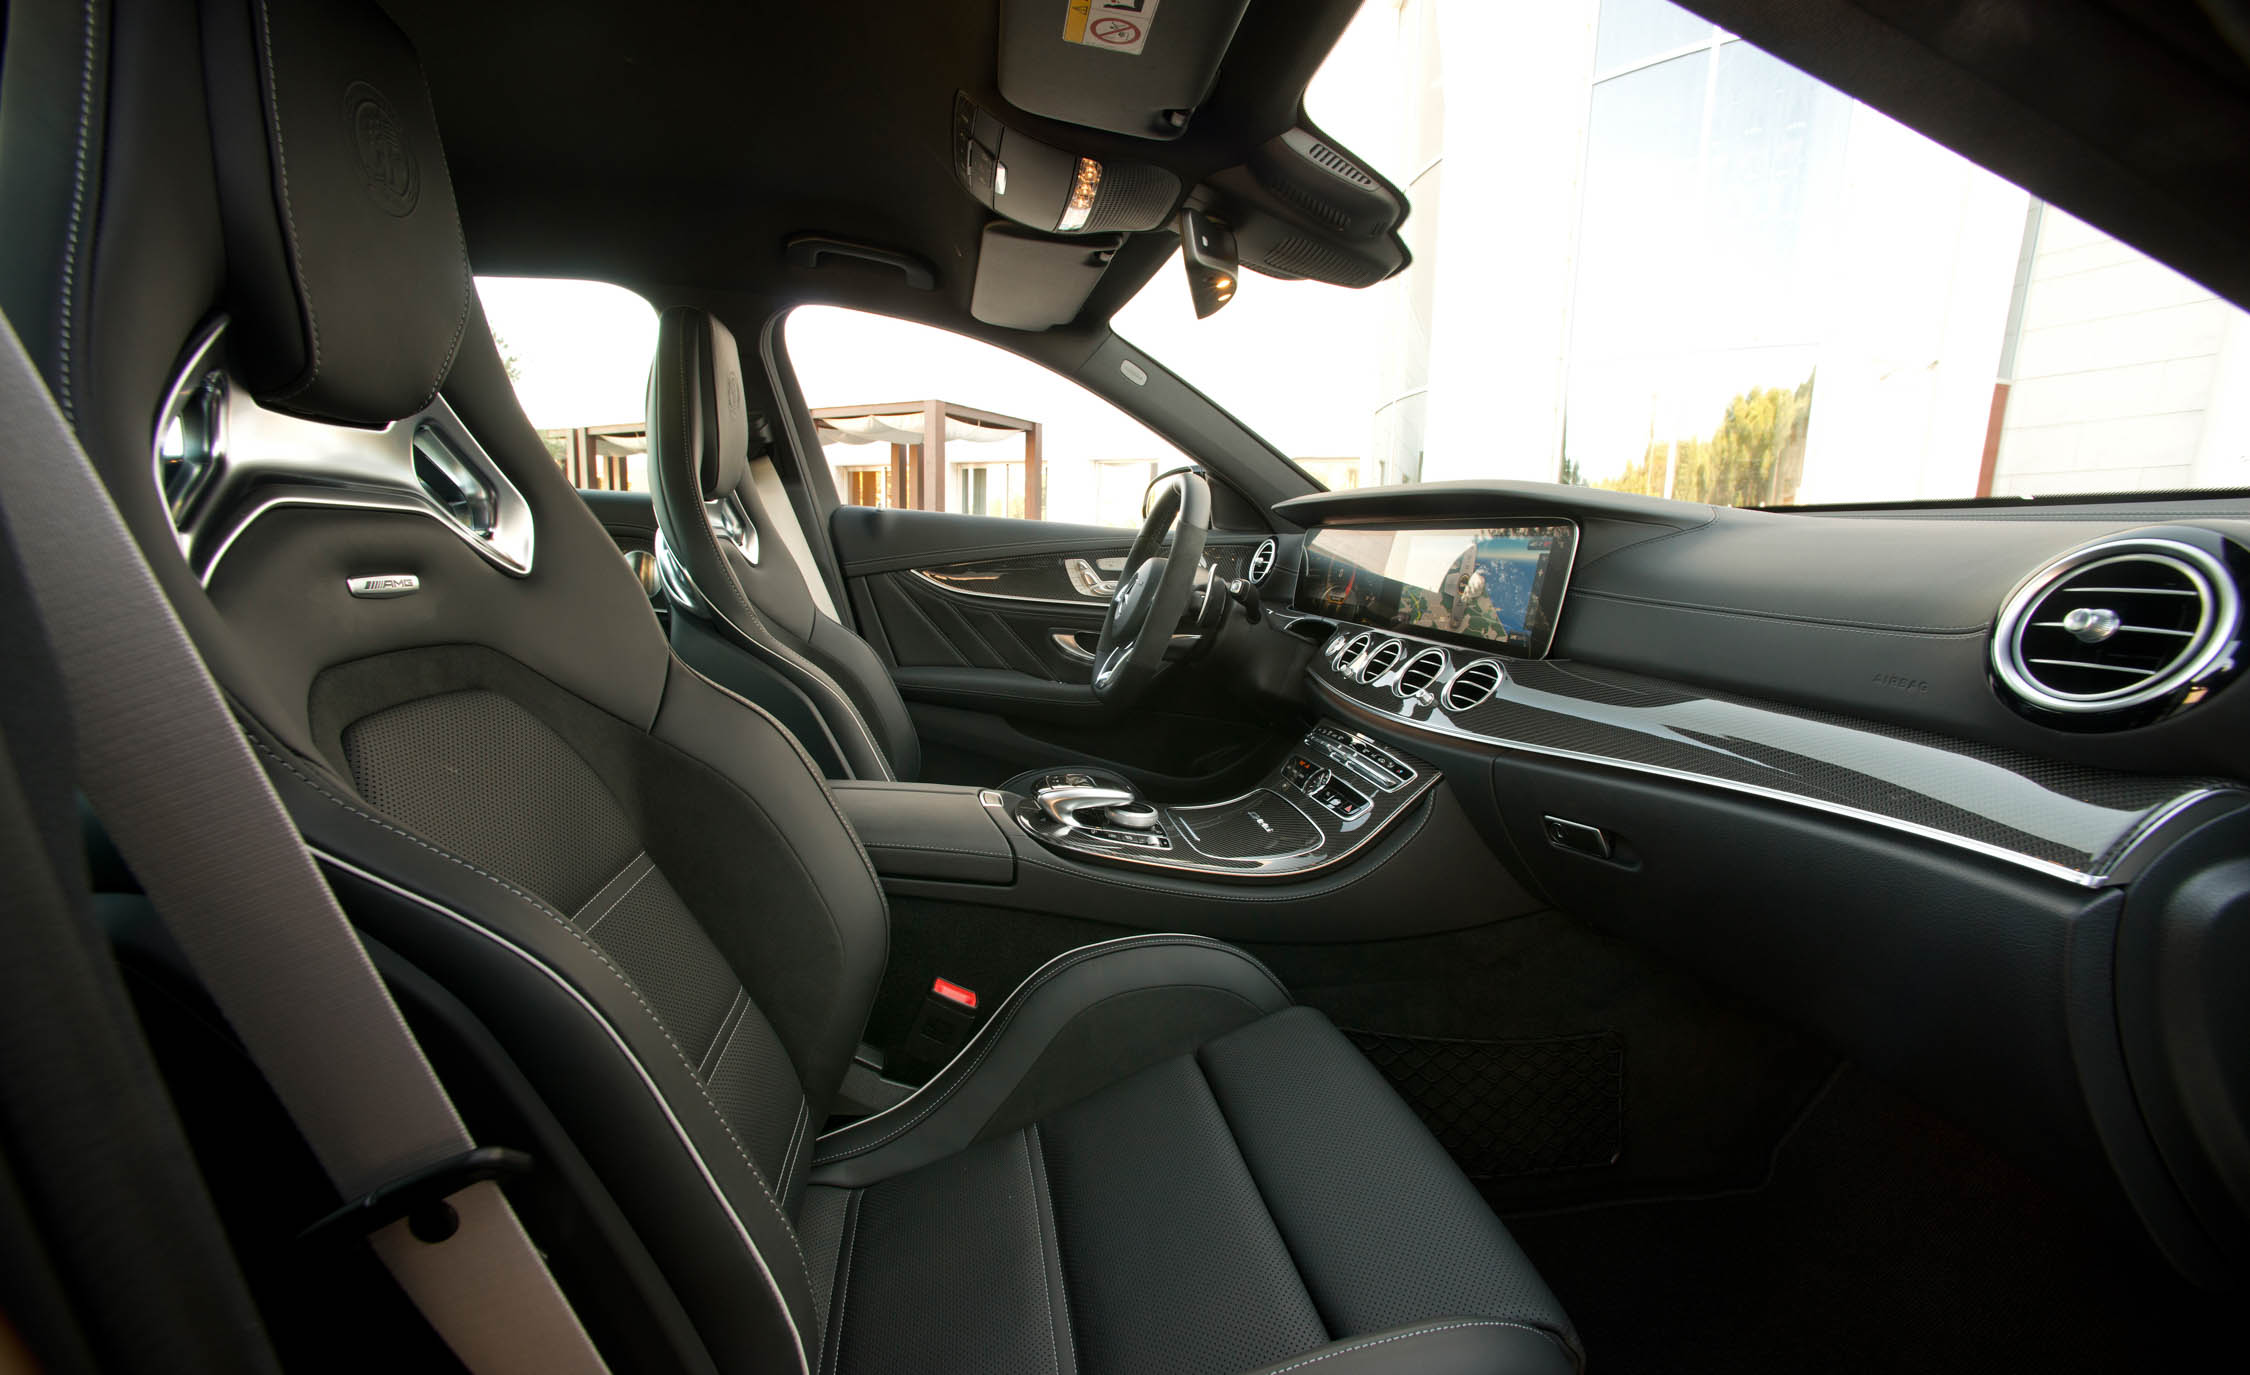 2018 Mercedes AMG E63 Interior Seats Front (Photo 31 of 41)